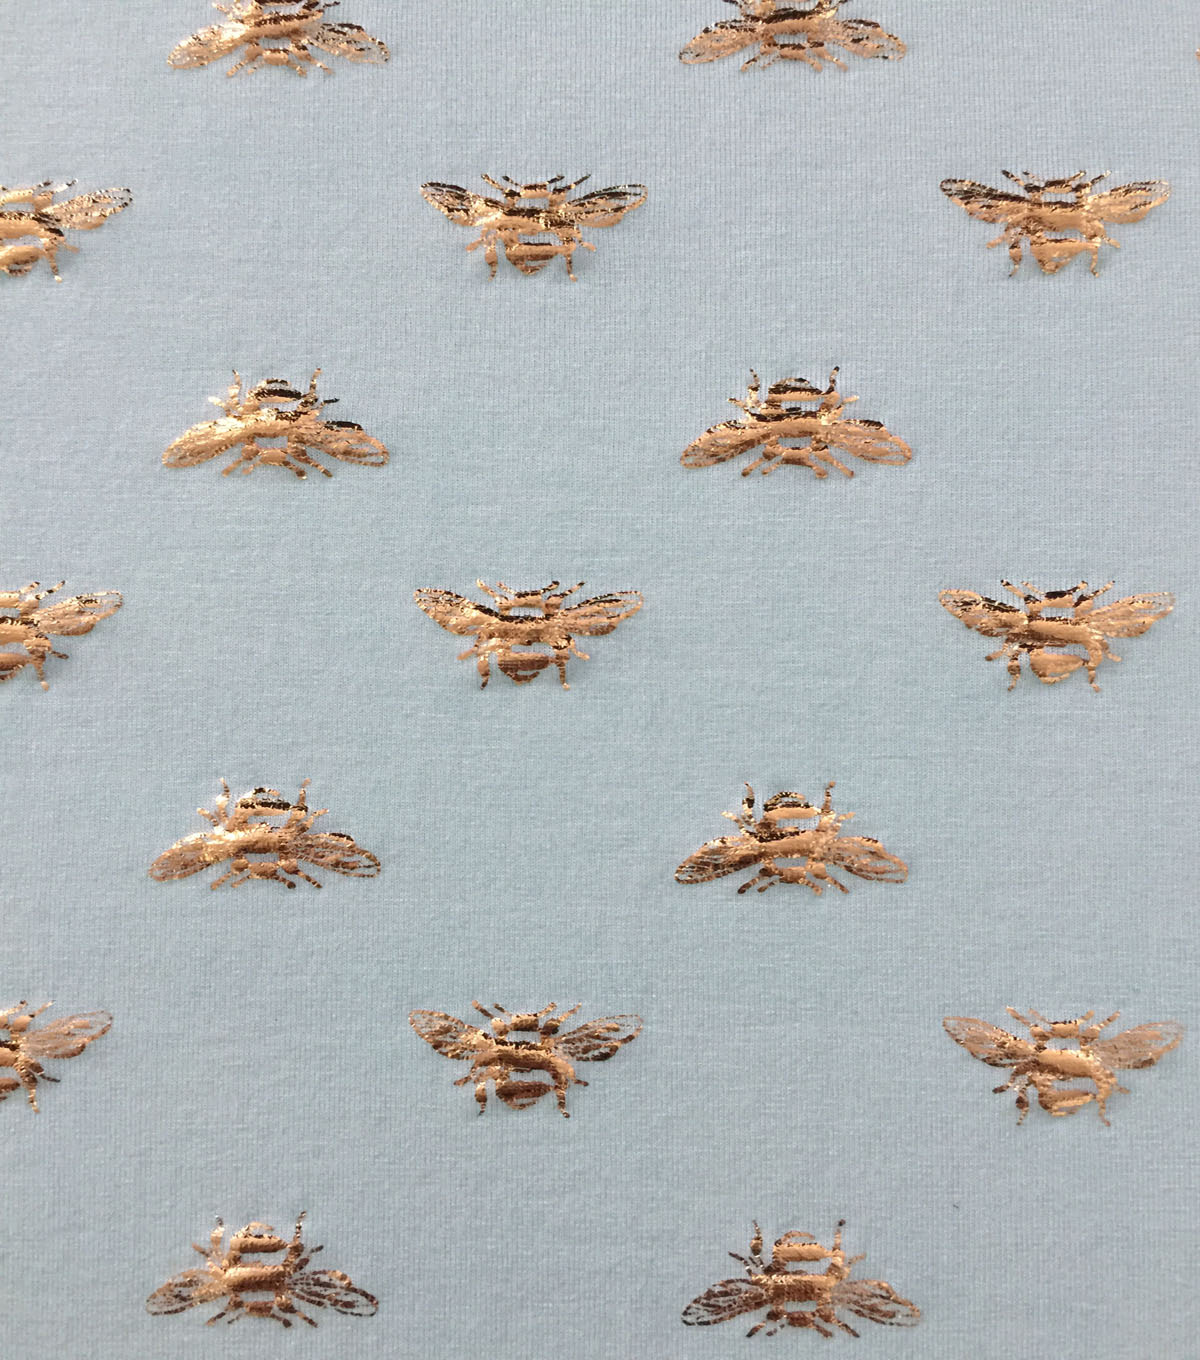 Rayon & Spandex Printed Knit Fabric-Gold Foiled Bees on Mint